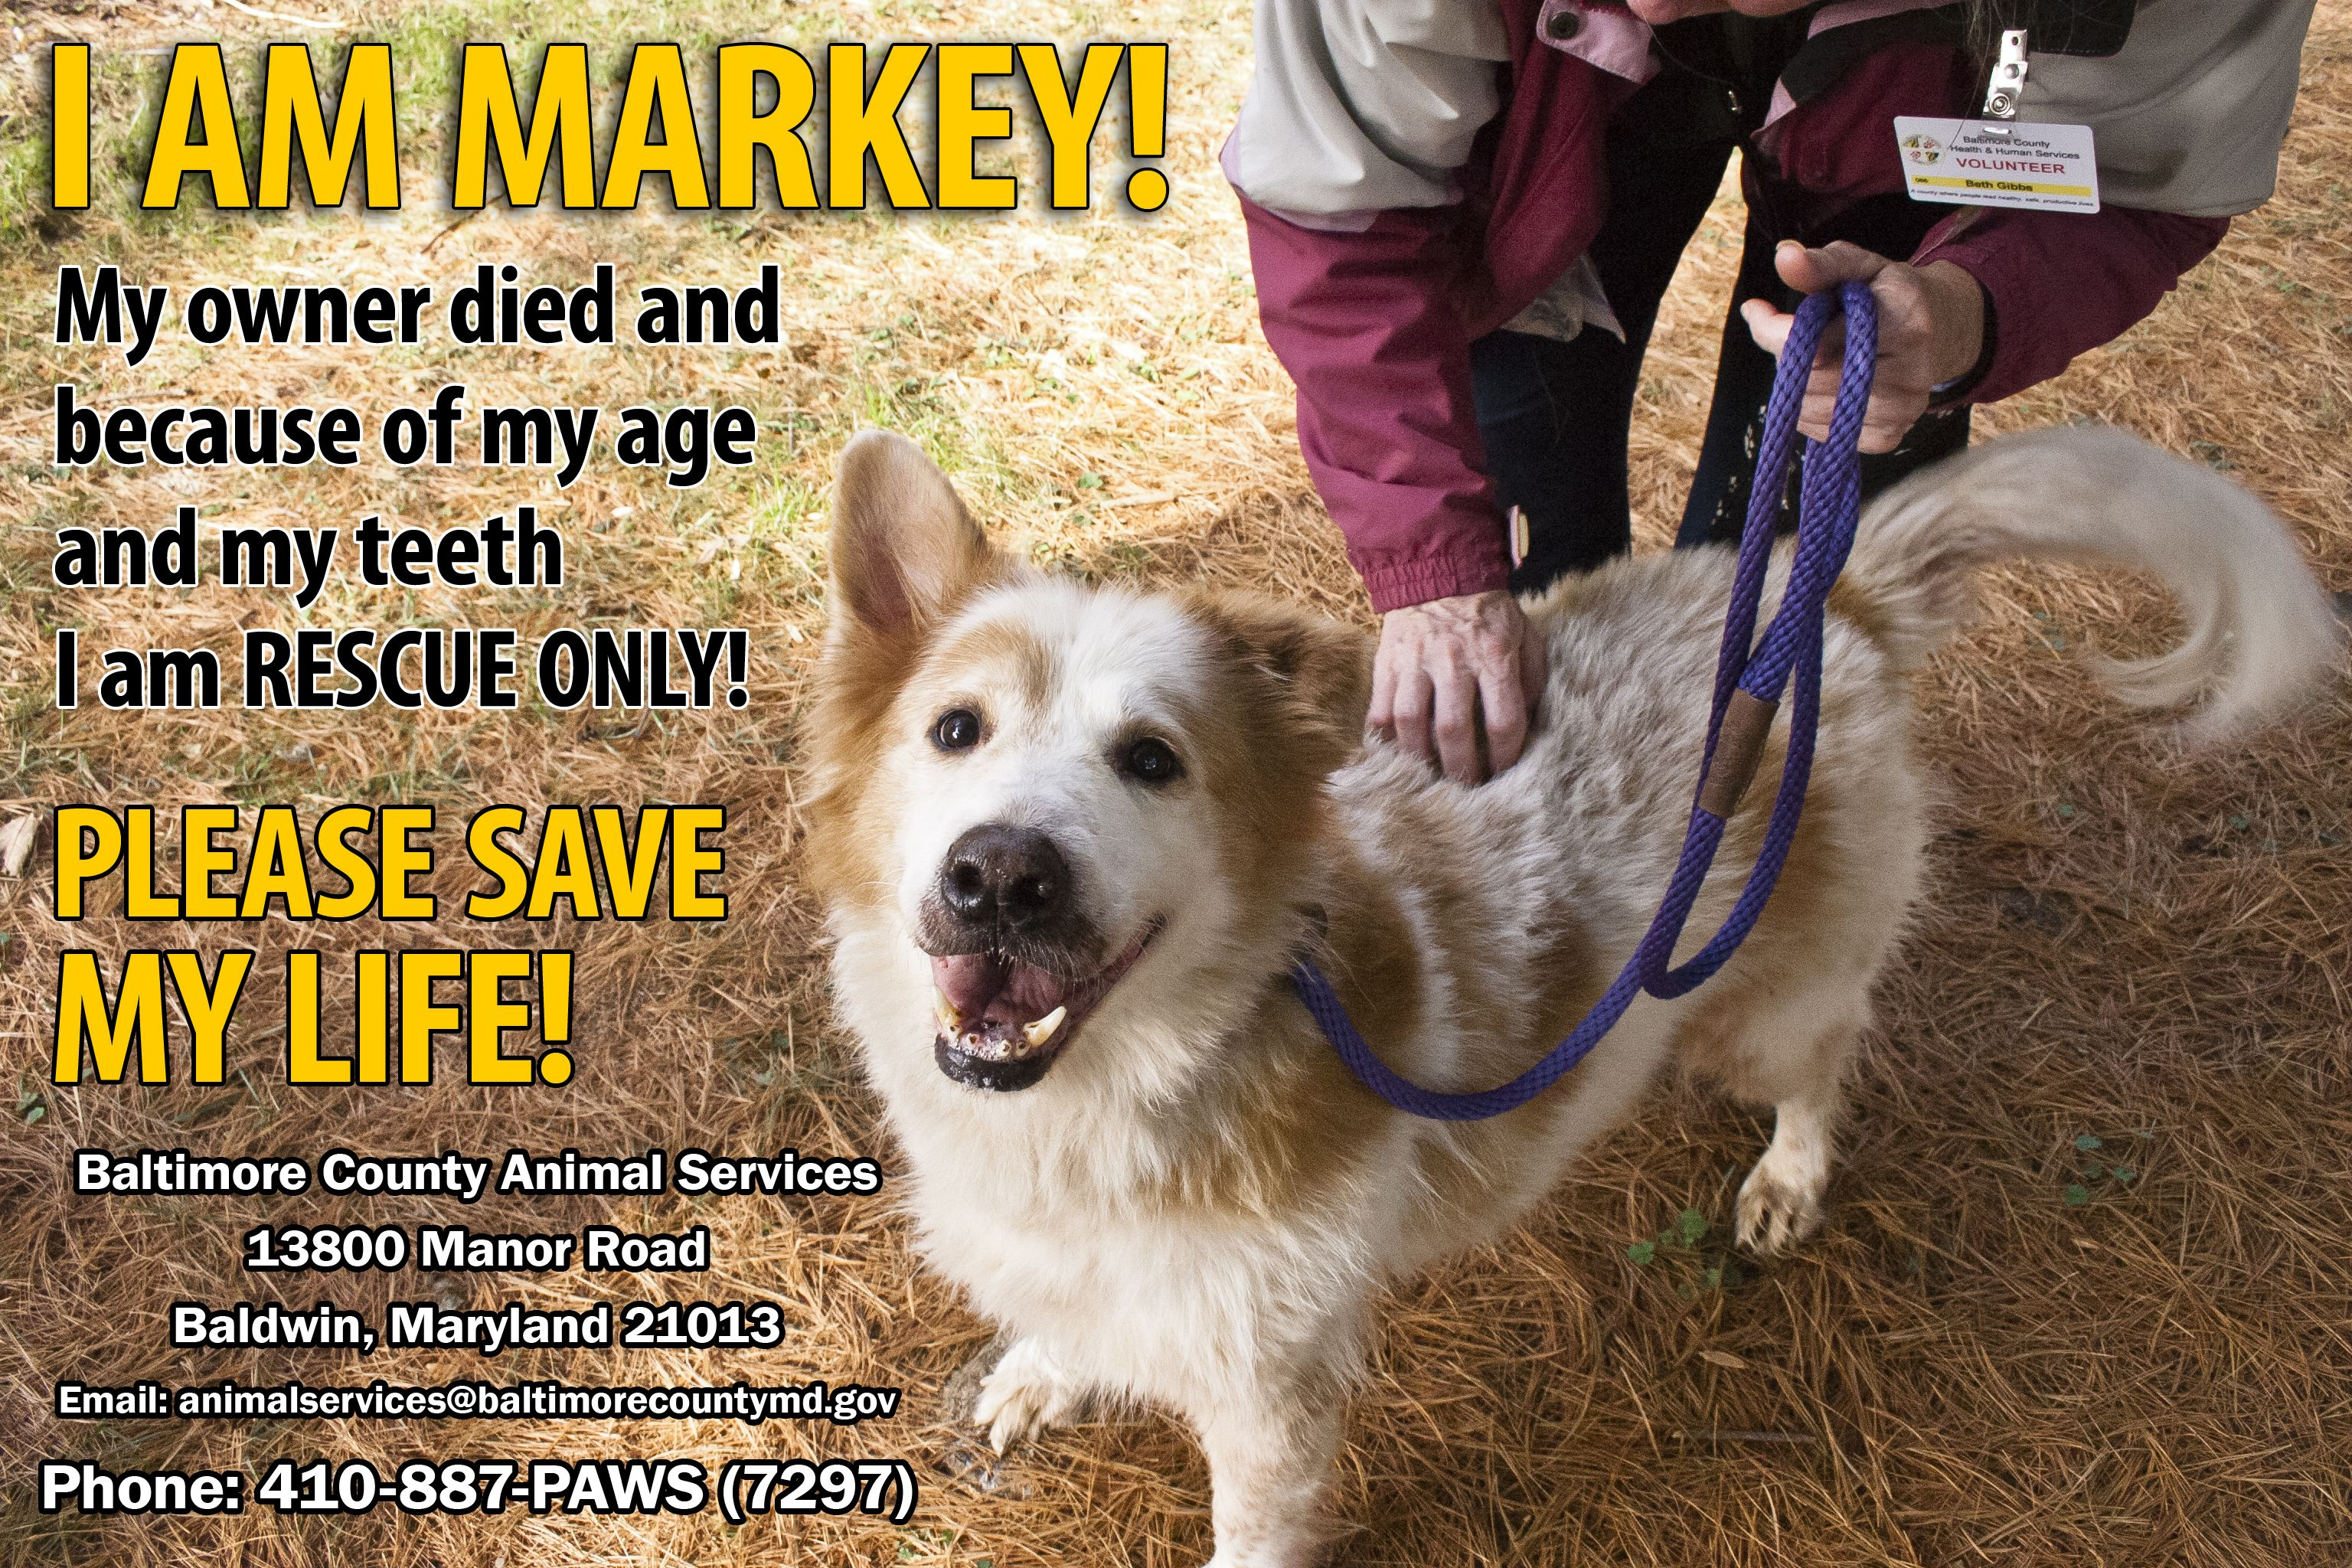 Markey S Contact Info Is Baltimore County Animal Services 13800 Manor Road Baldwin Maryland 21013 Email Animalservic Animal Rescue Animals Baltimore County